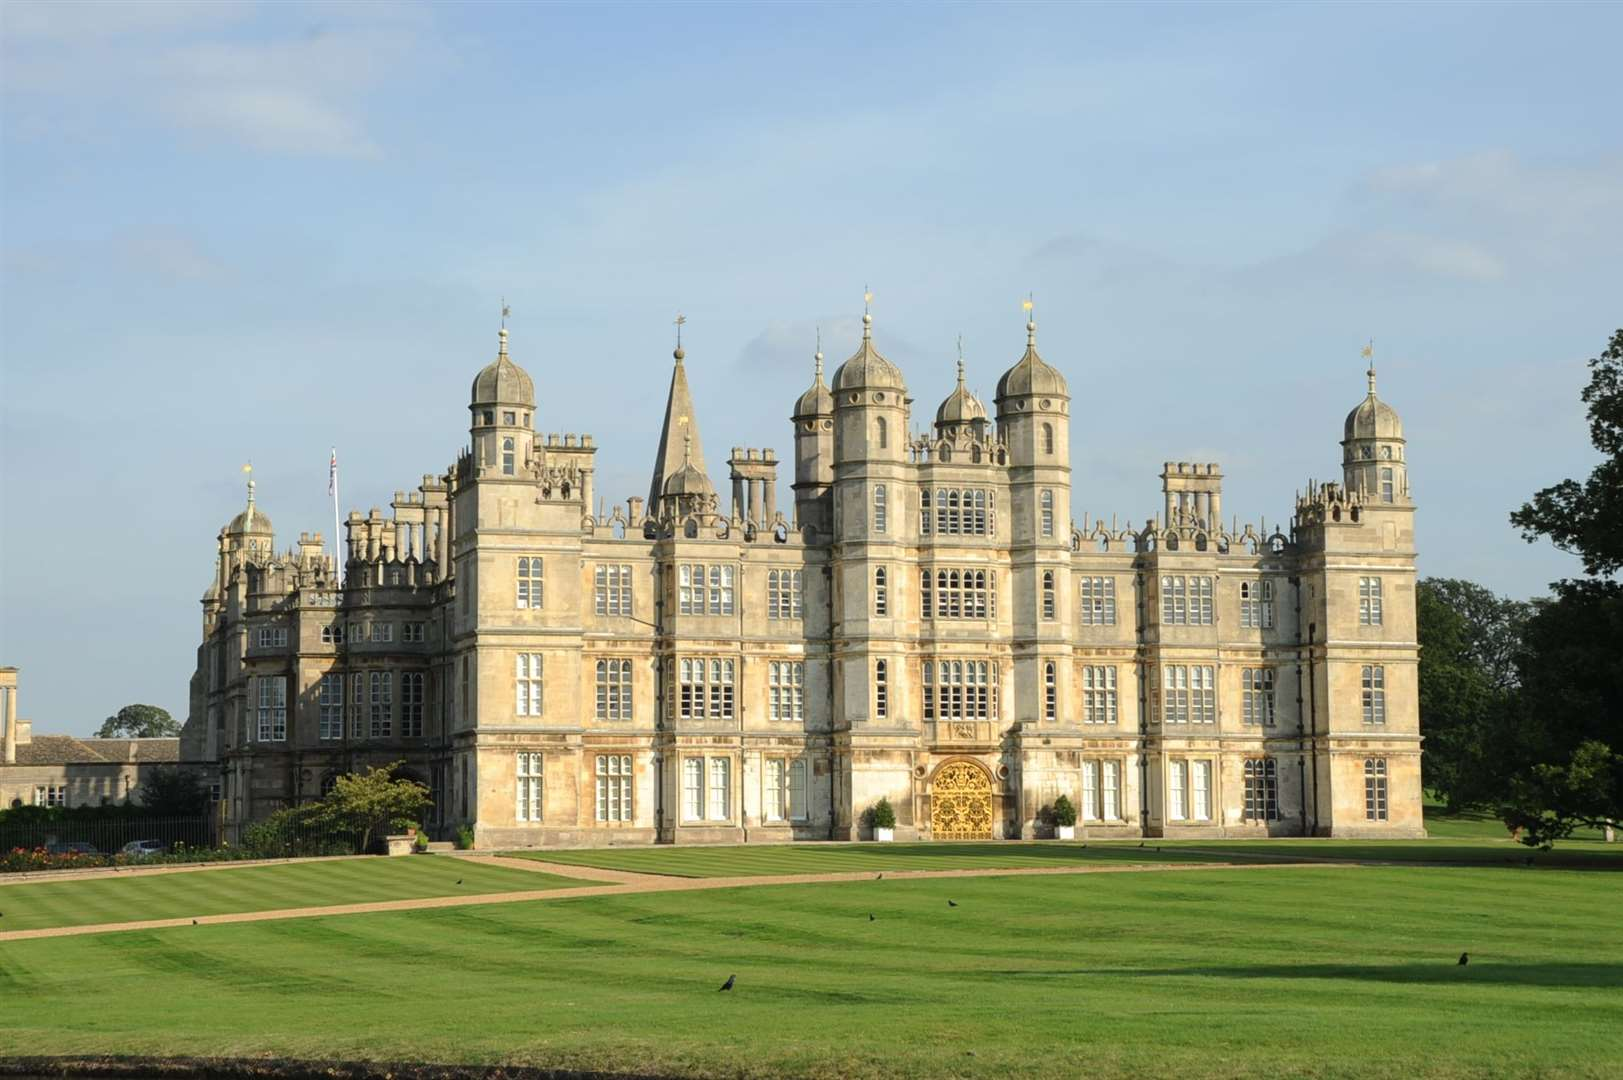 Burghley House.